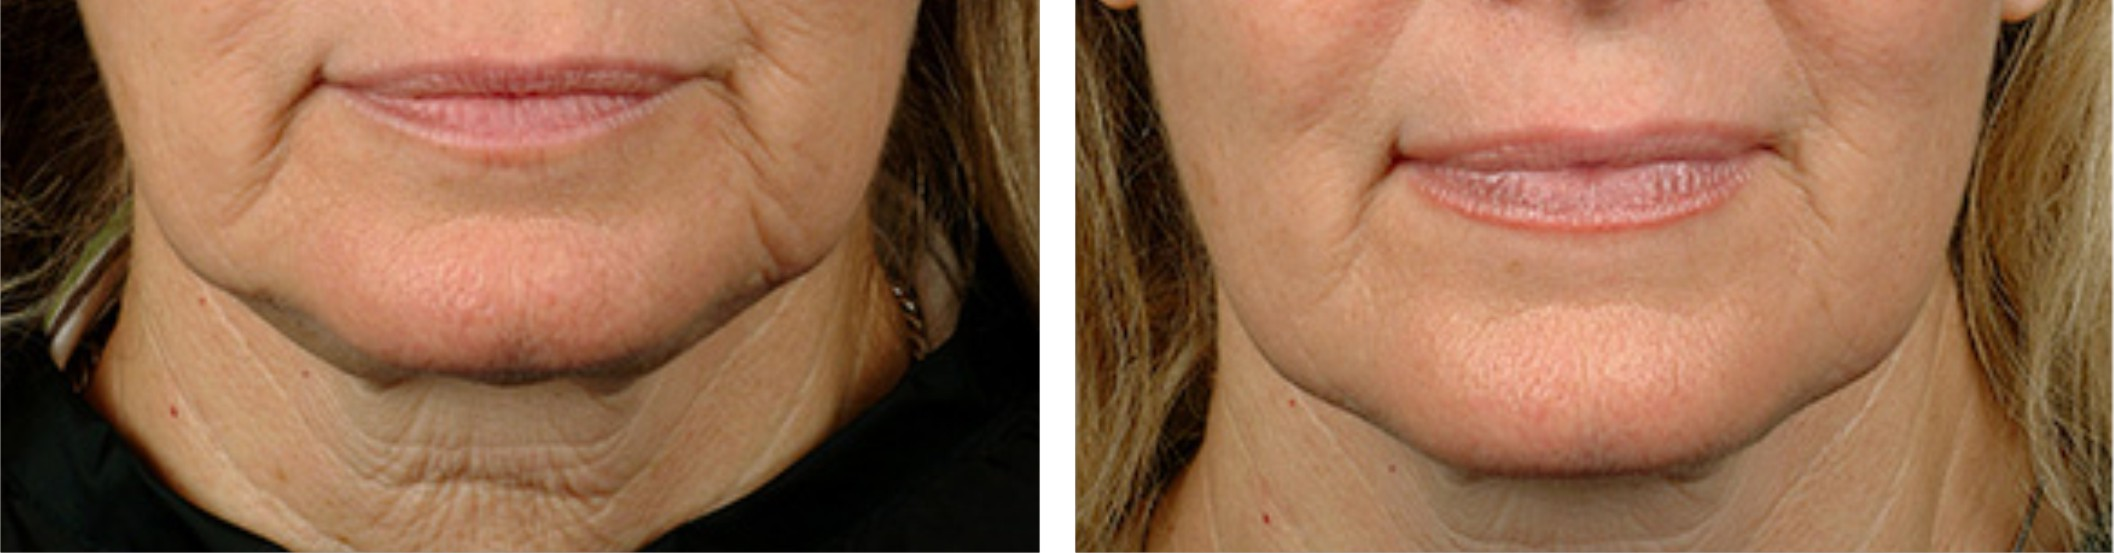 Radio Frequency Skin Tightening (RF) Image Two